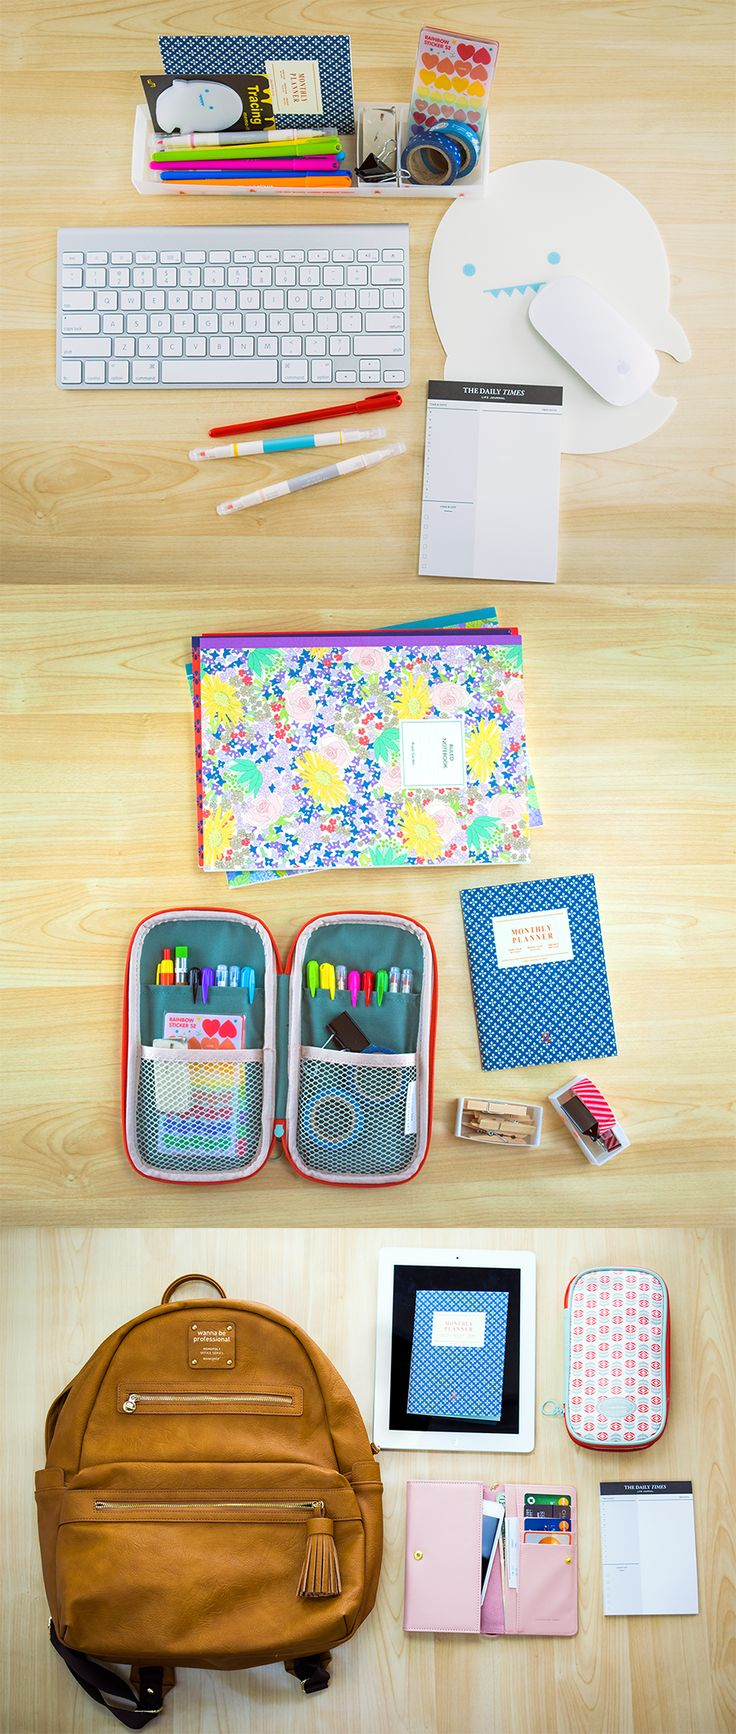 School just got a whole lot cuter! So many back-to-school must-haves at mochithings.com <3